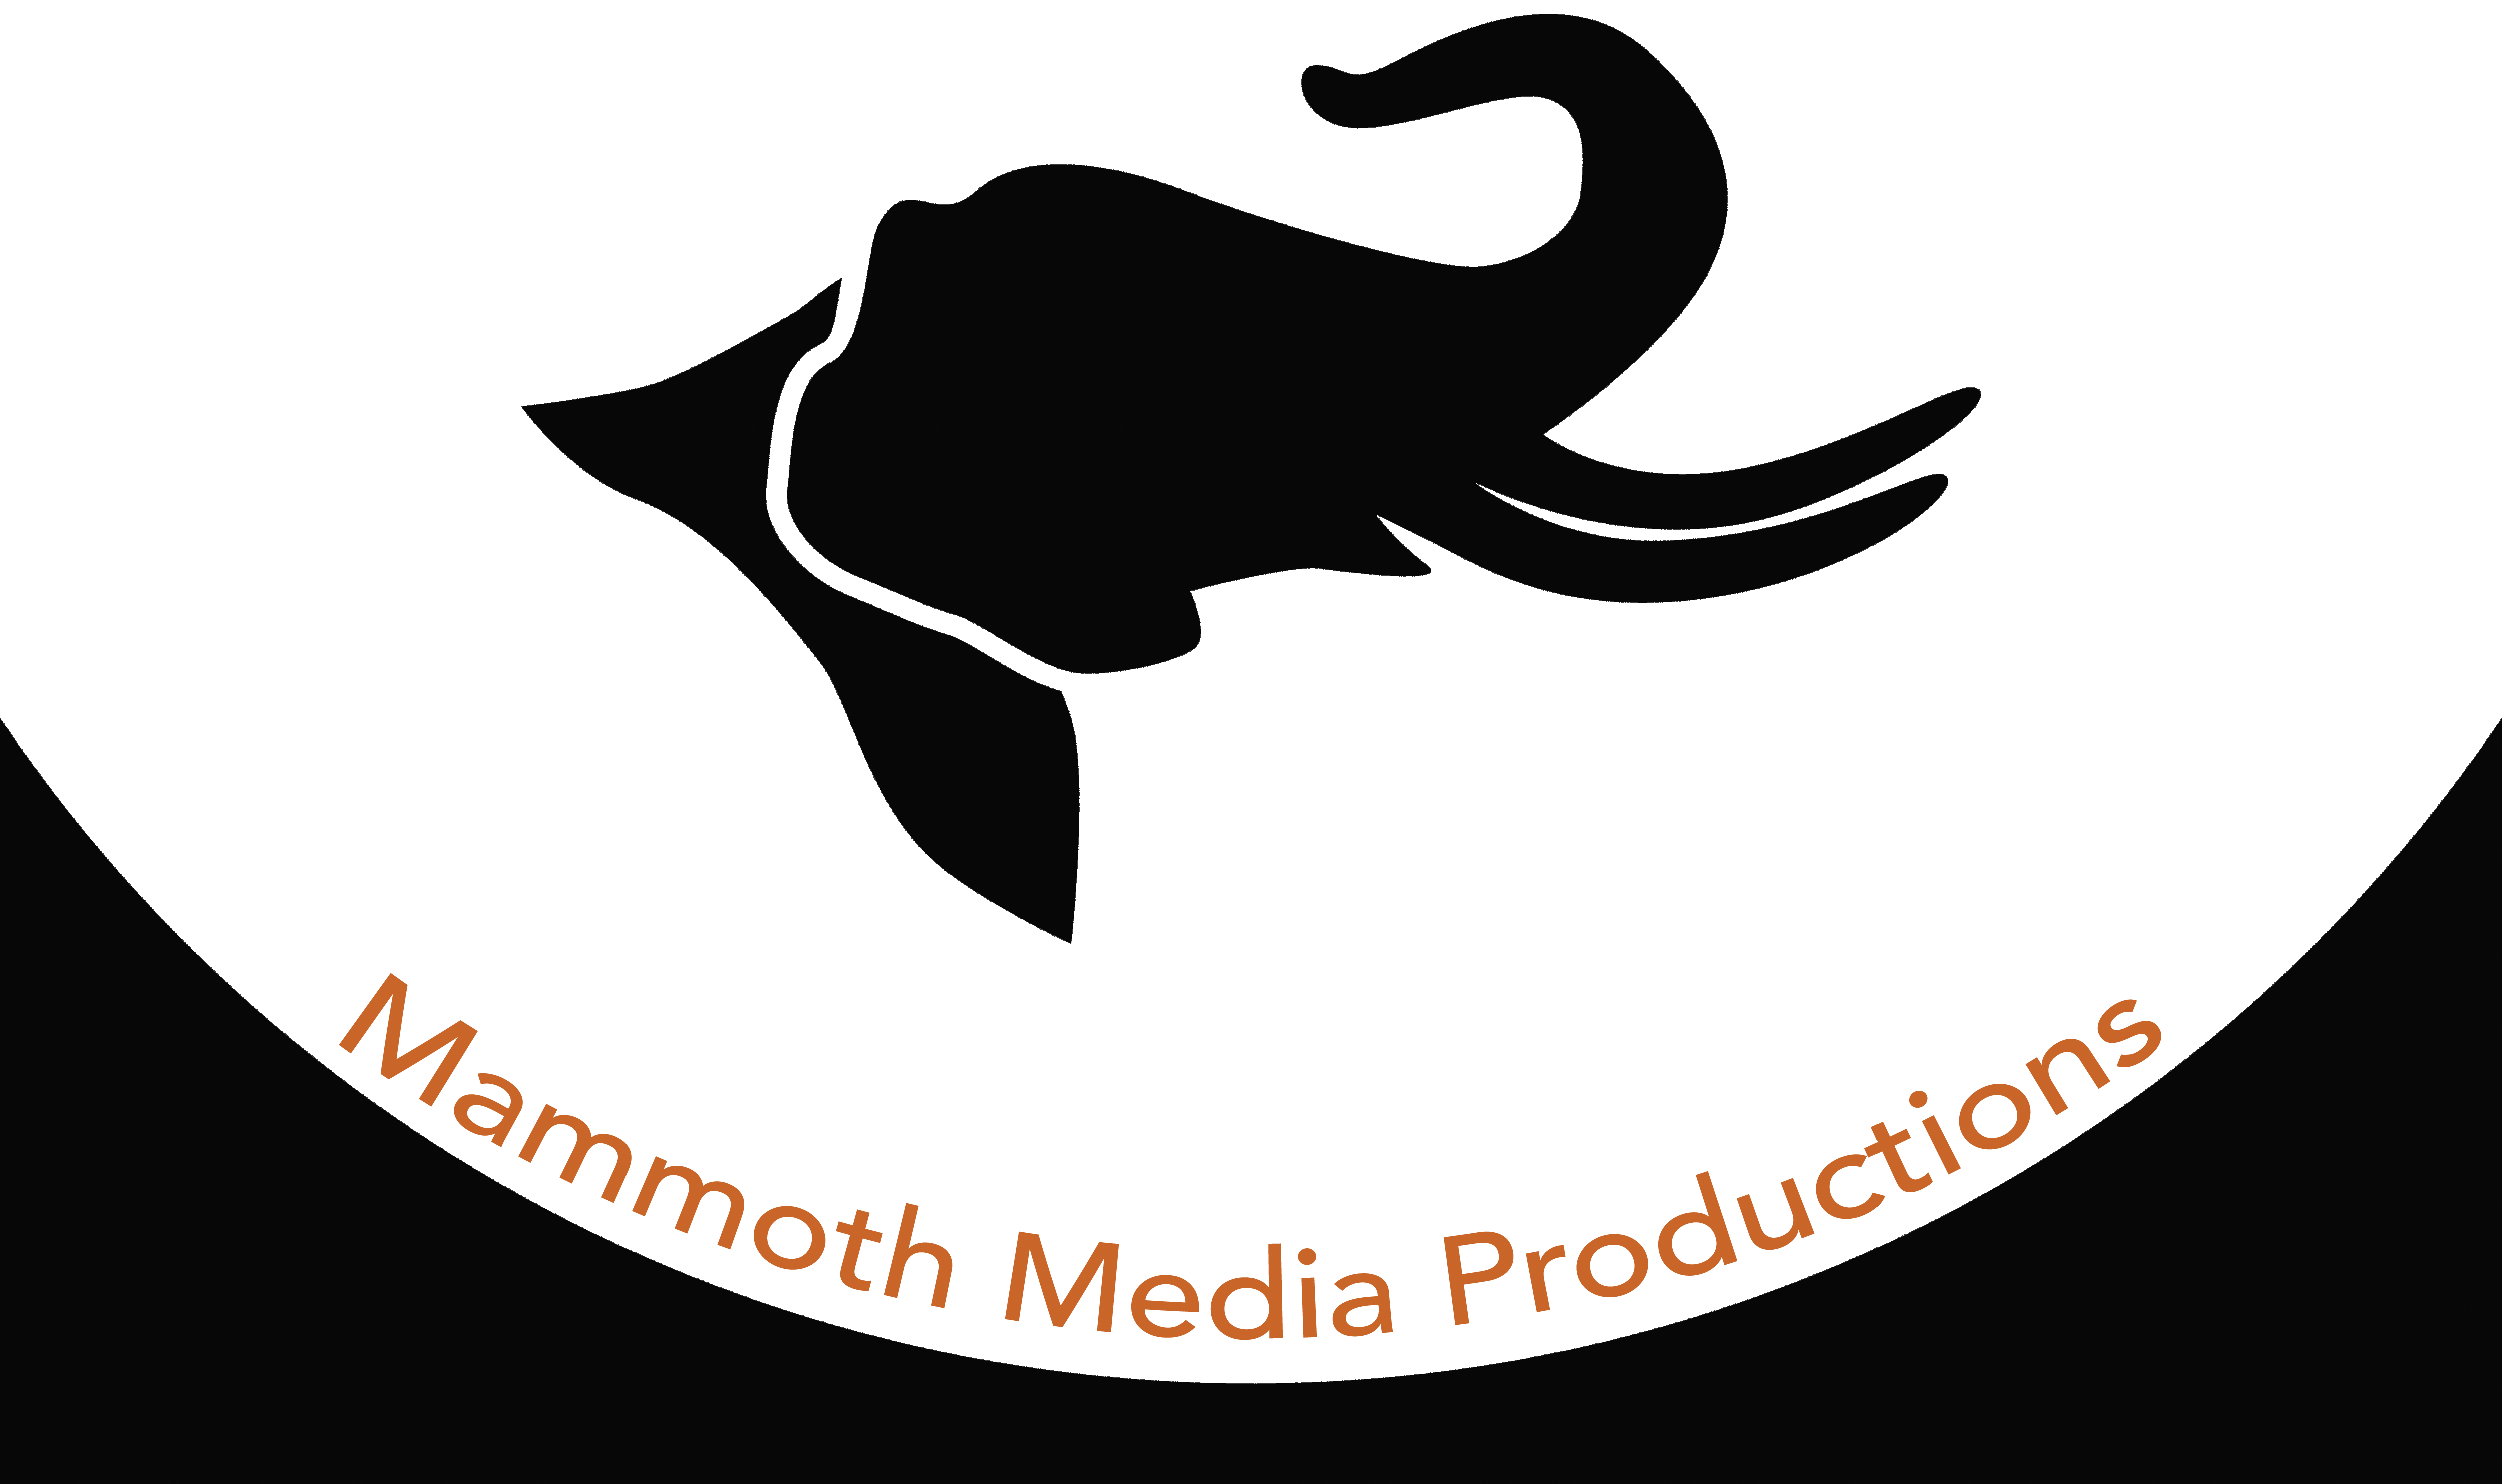 Mammoth Media Productions